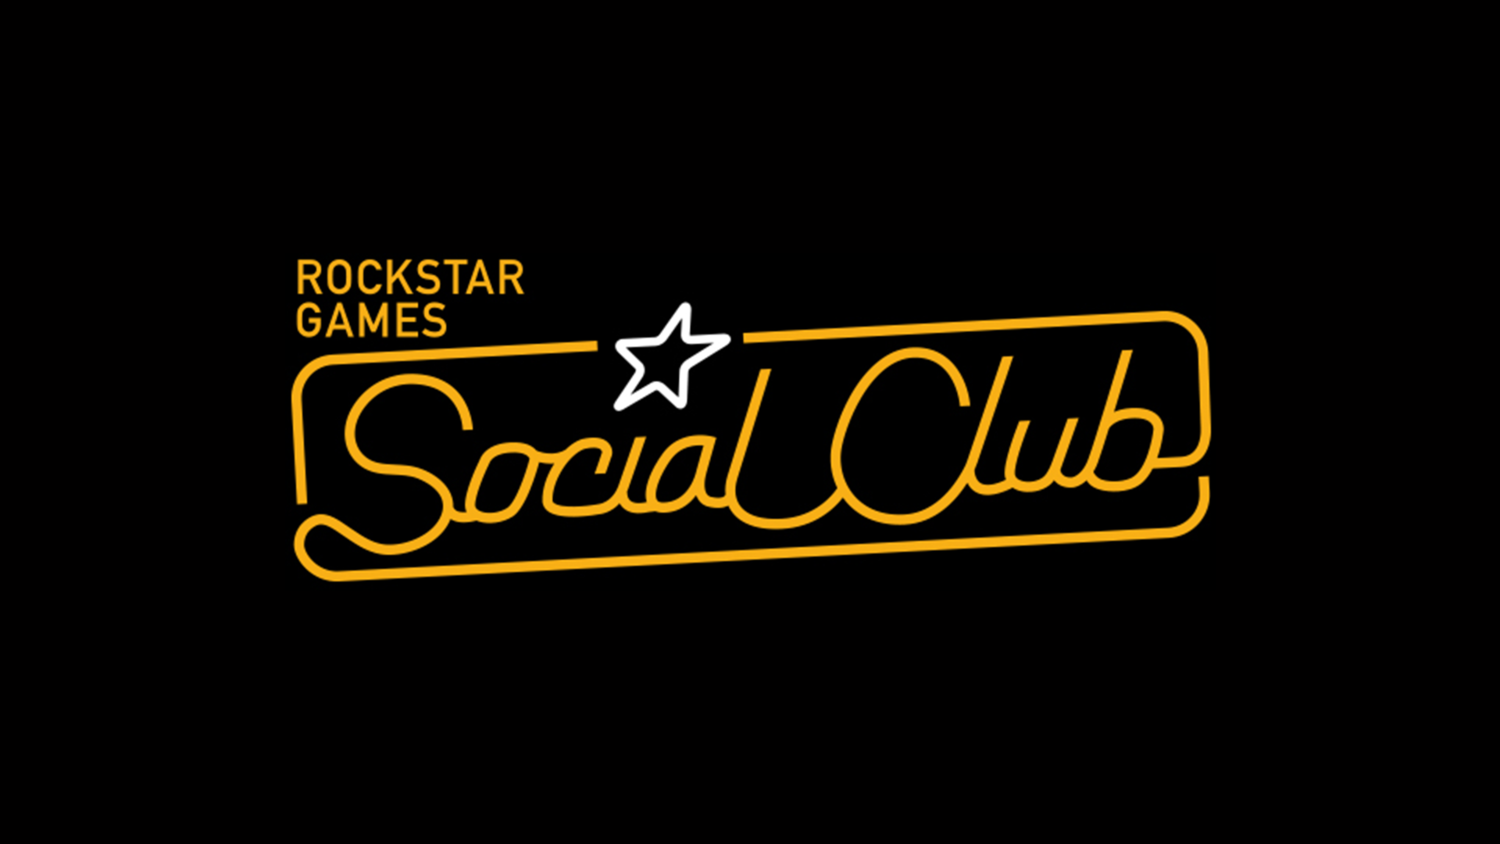 I Want to Fully Remove Rockstar Games Social Club, How to Do